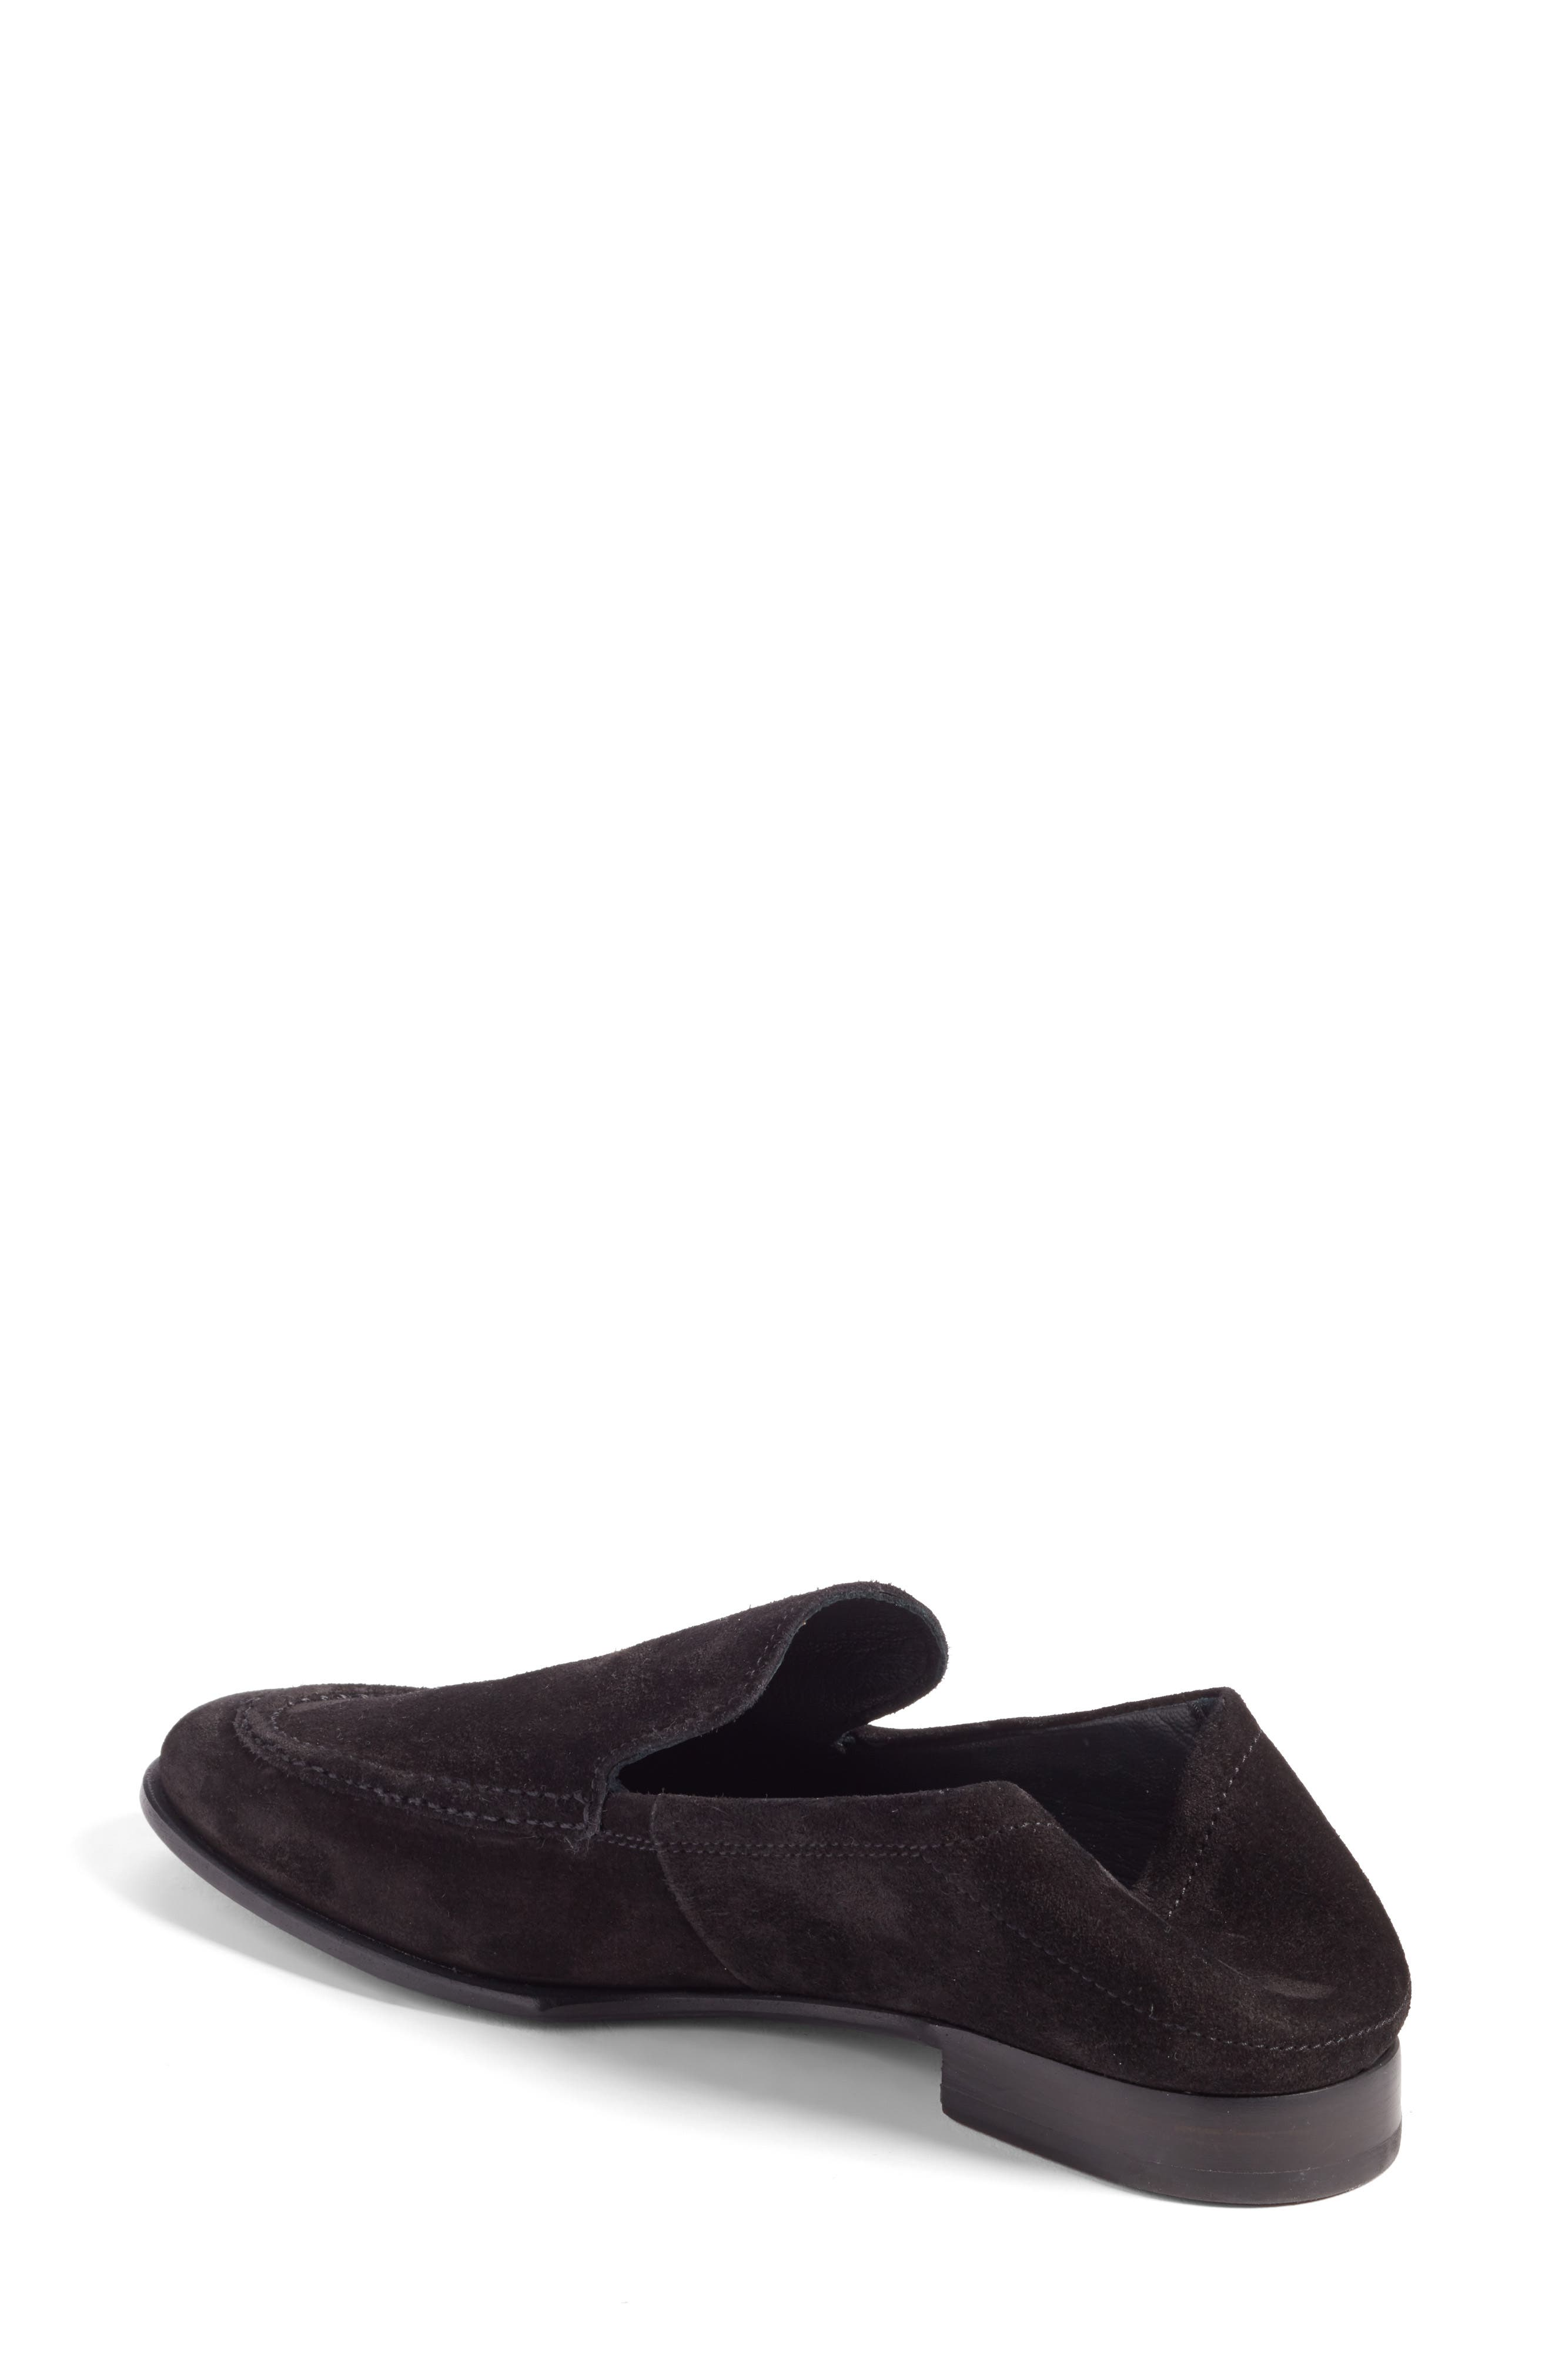 Alix Convertible Loafer,                             Alternate thumbnail 3, color,                             008